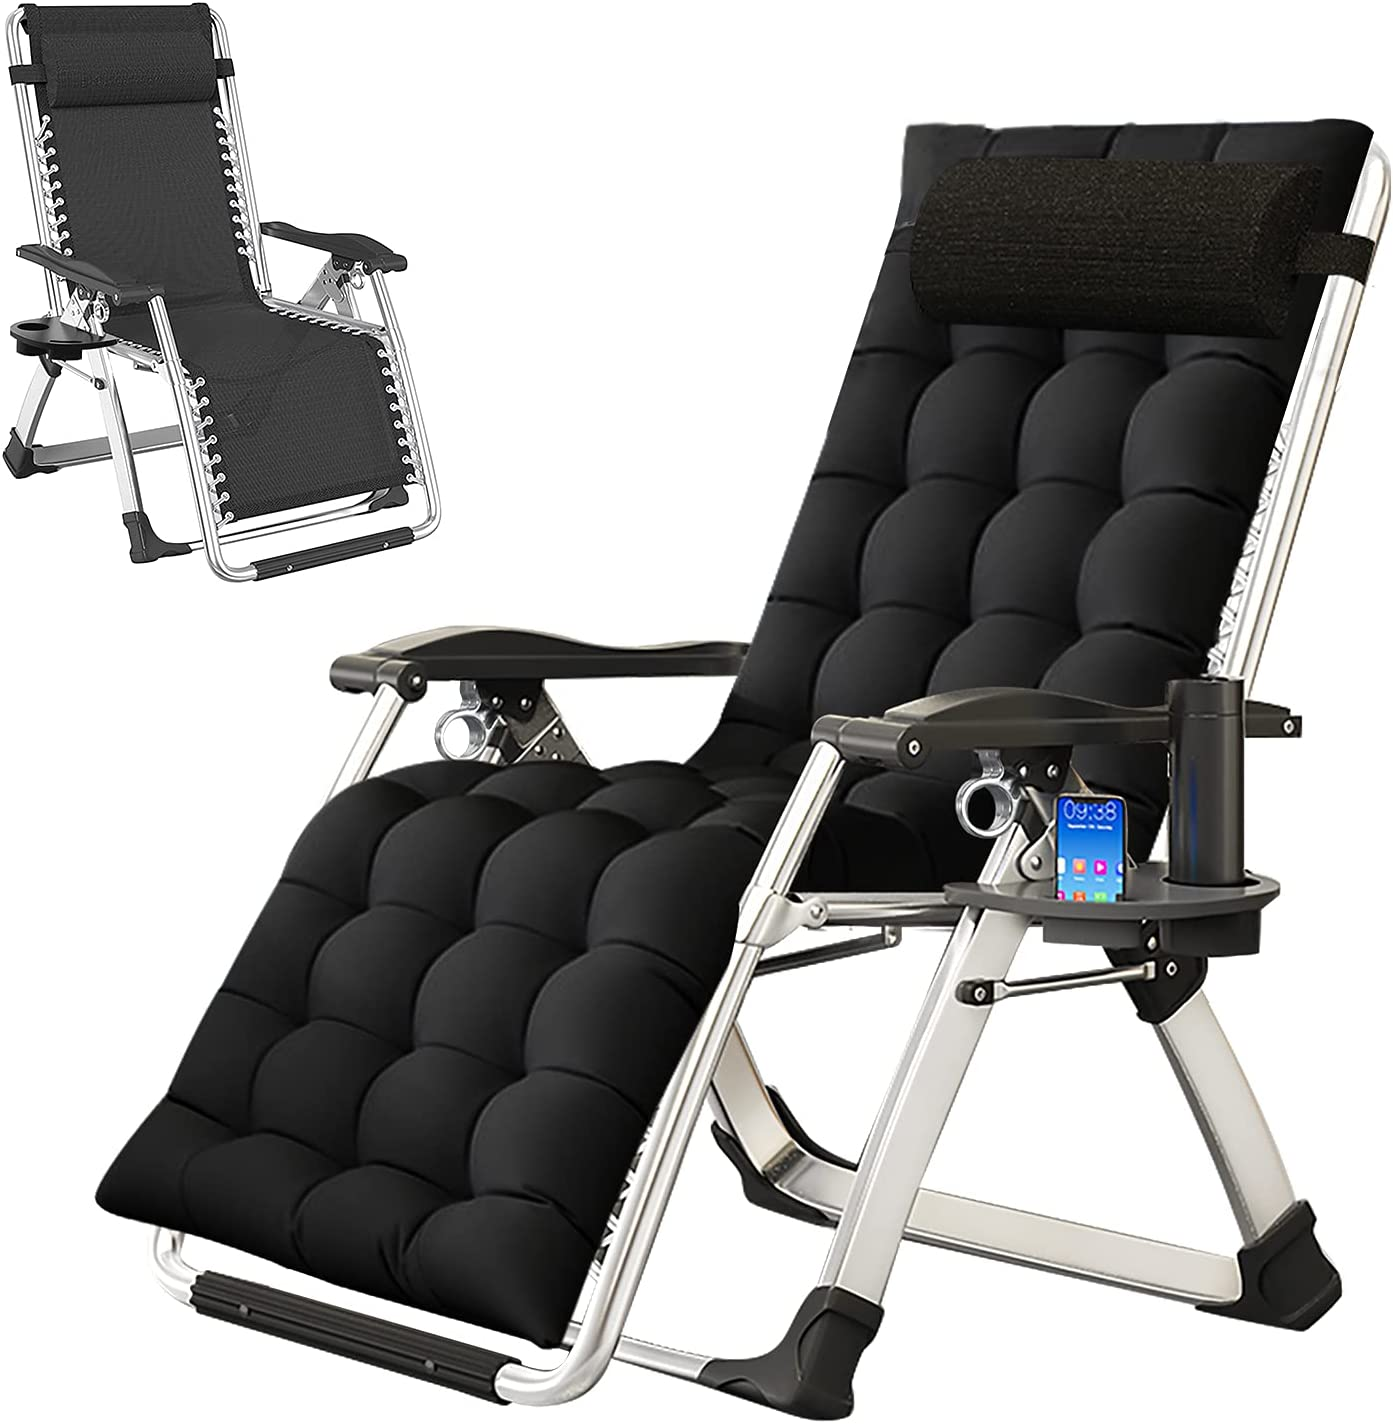 BarbellaPatio Chairs Zero Gravity Padded Max 76% OFF Recliner Tampa Mall Lounge Chair